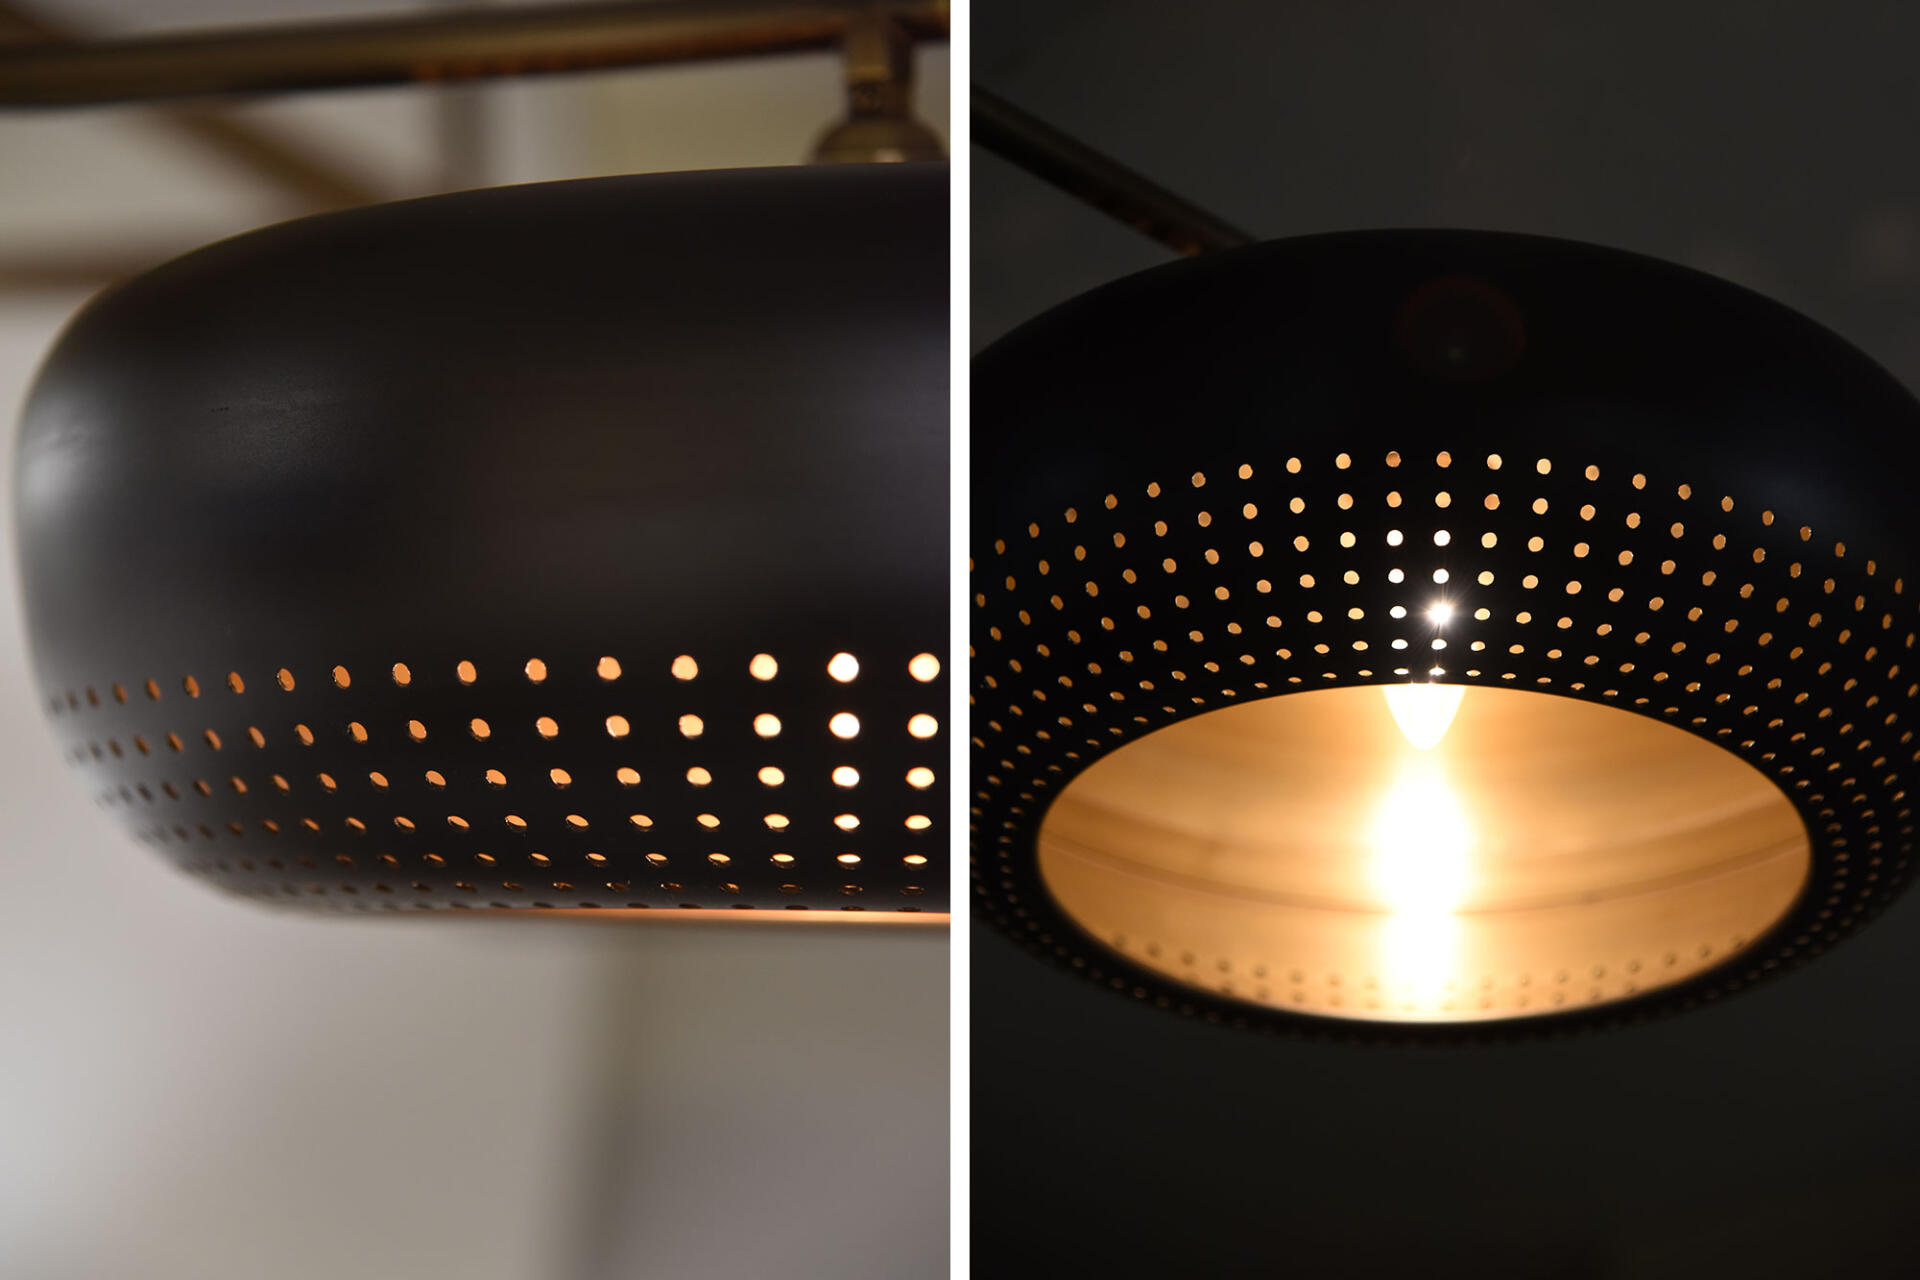 Collier Webb custom lighting manufacturer worked with Mulberry Black, New York